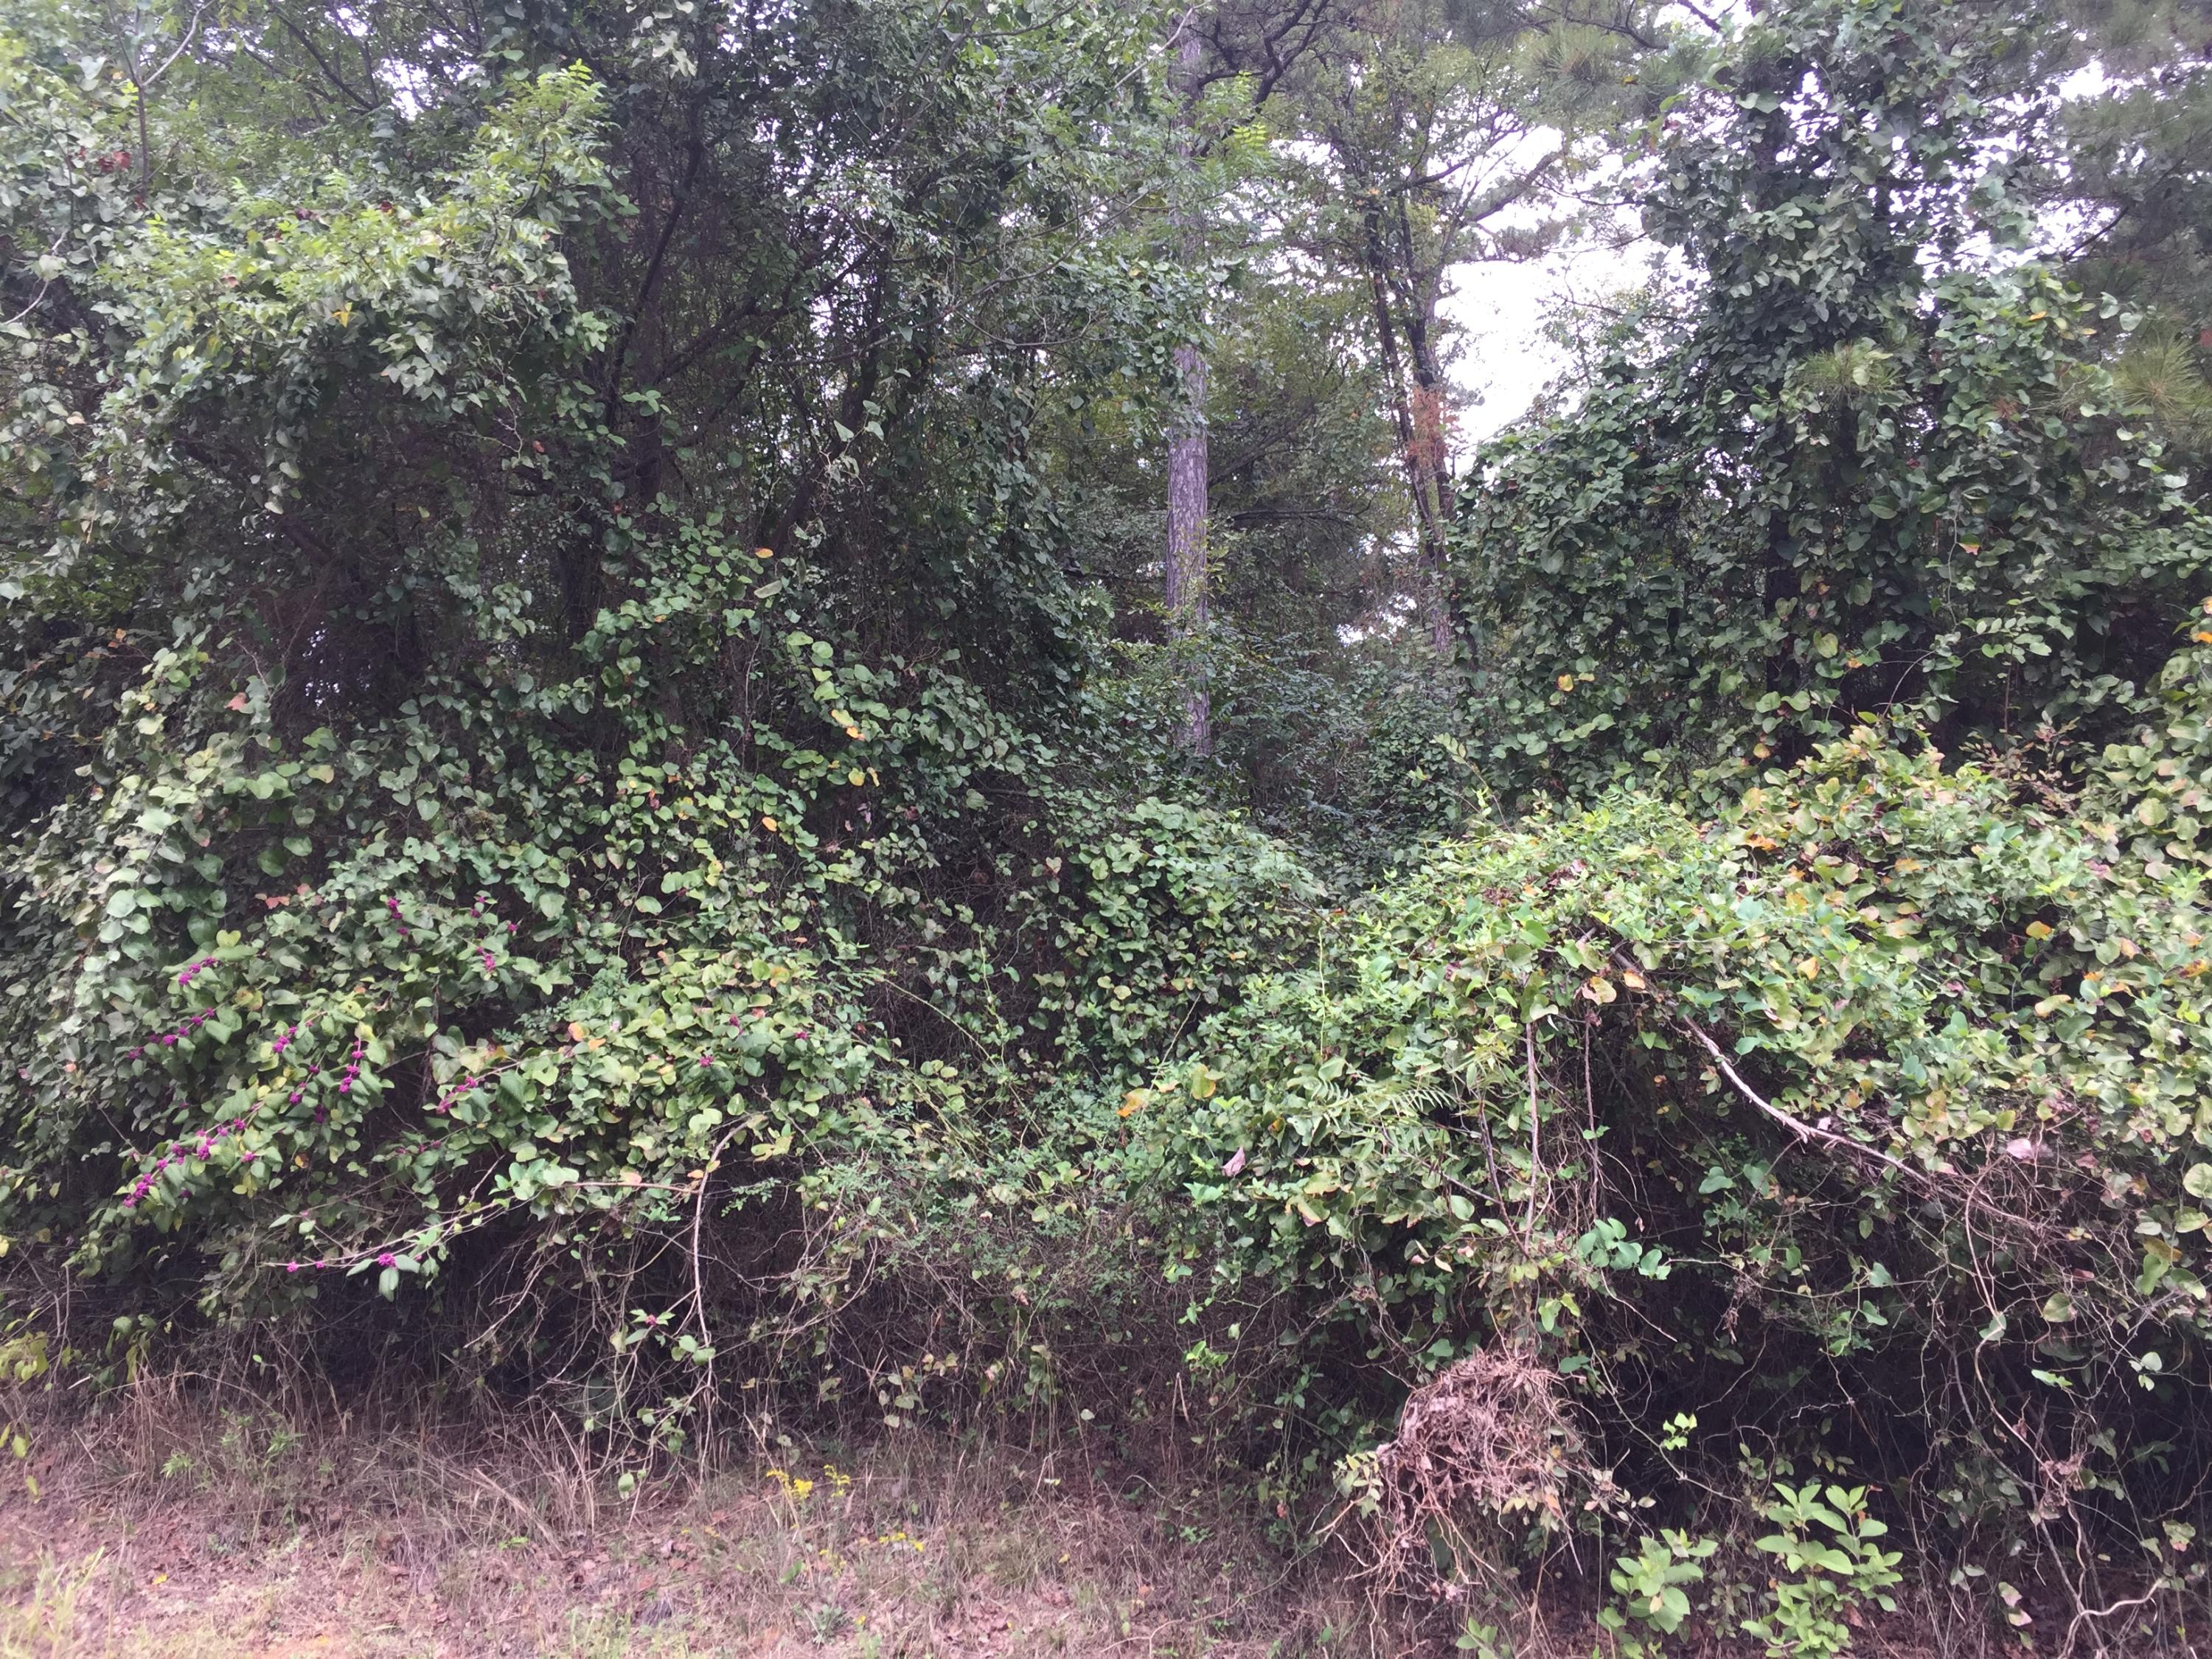 Large photo 3 of land for sale at  Eagle's Nest Subdivision , London, AR, listed by Coldwell Banker Premier Realty